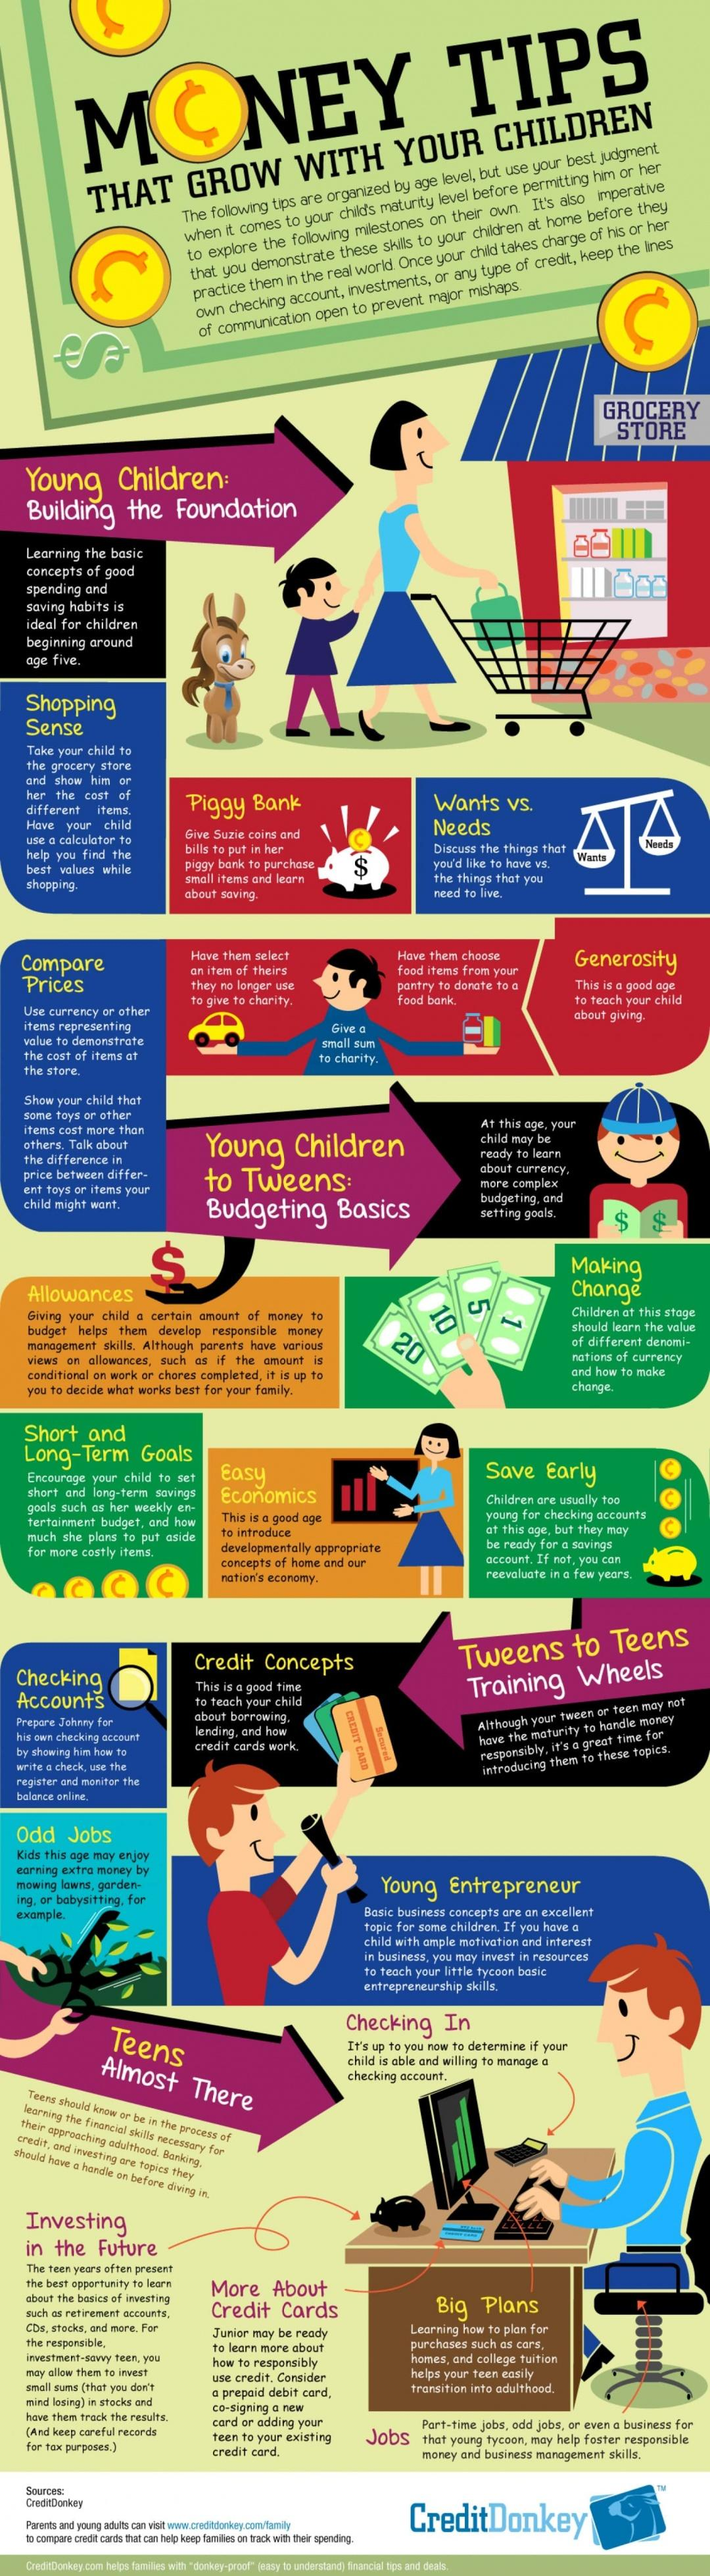 Money Tips That Grow With Your Children